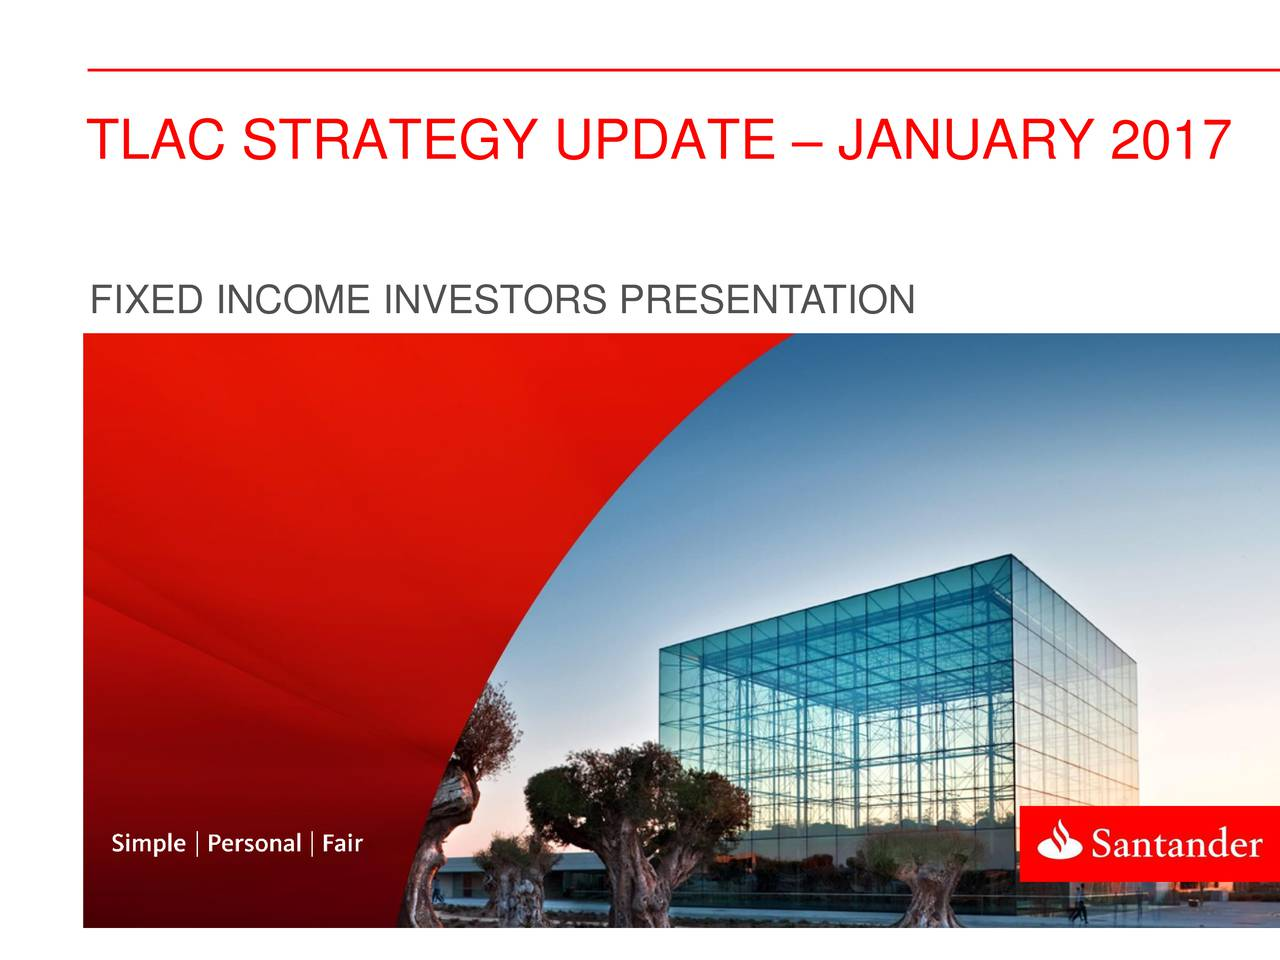 FIXED INCOME INVESTORS PRESENTATION